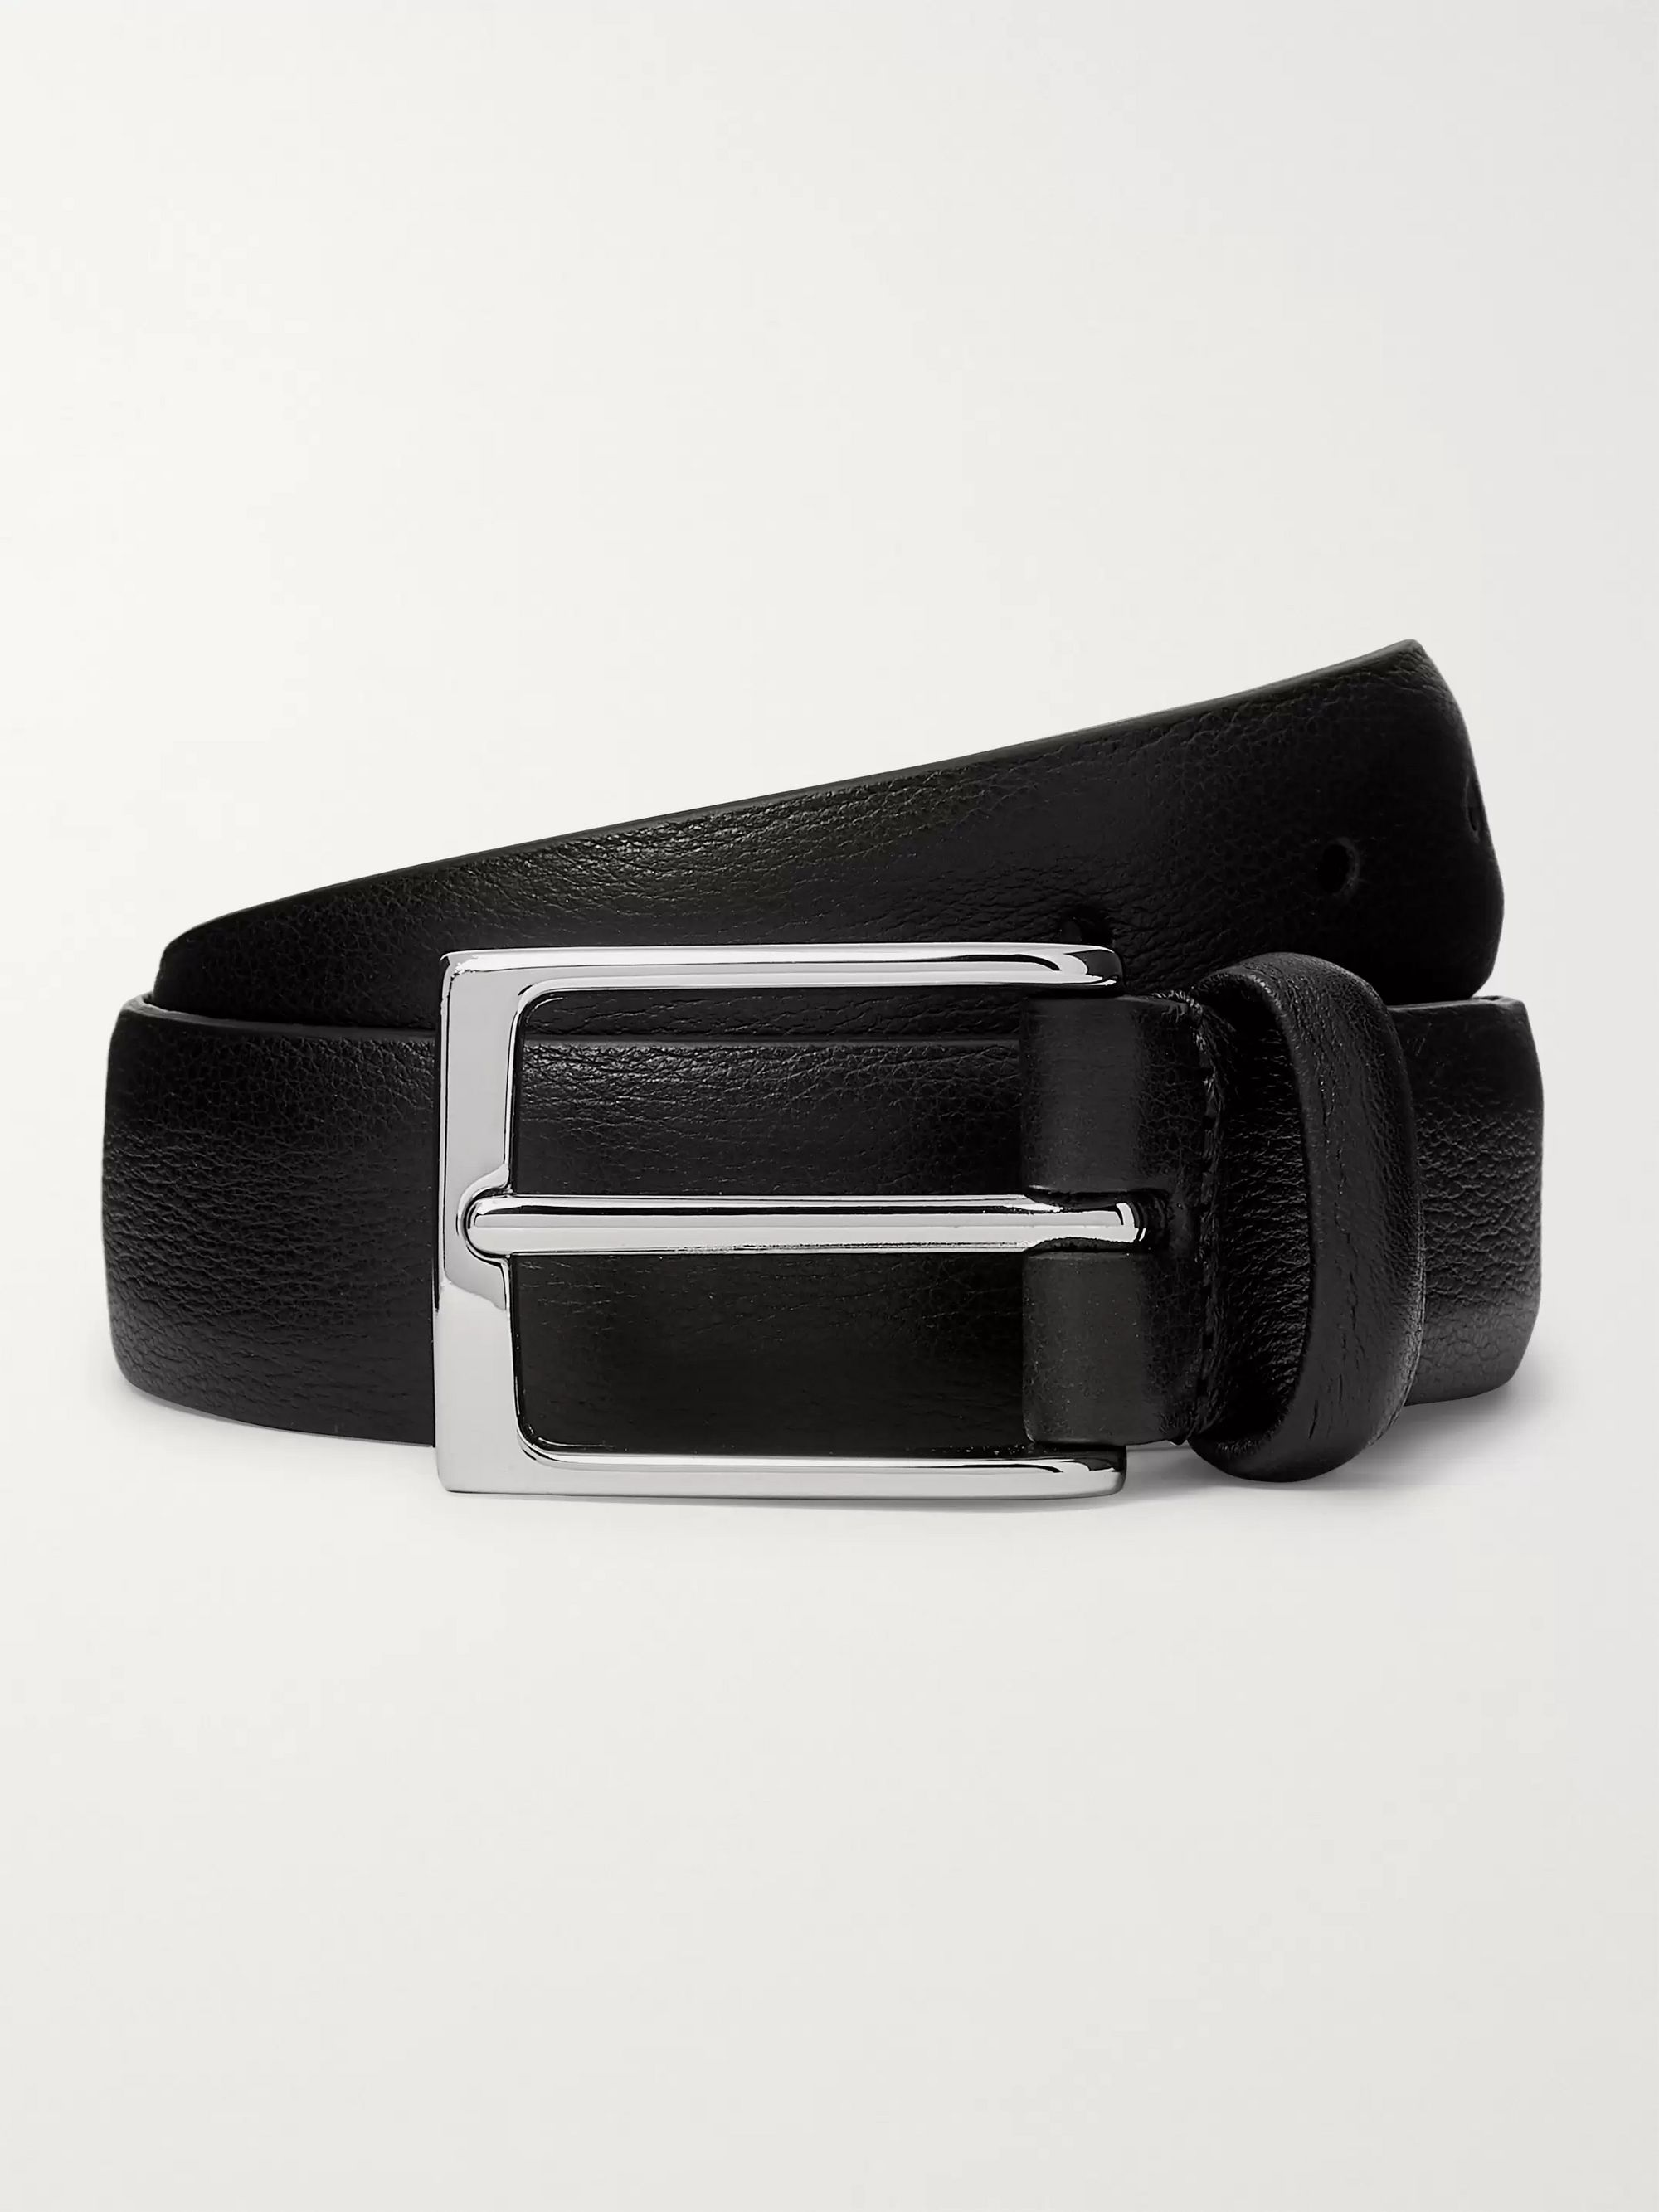 Anderson's 3cm Black Full-Grain Leather Belt